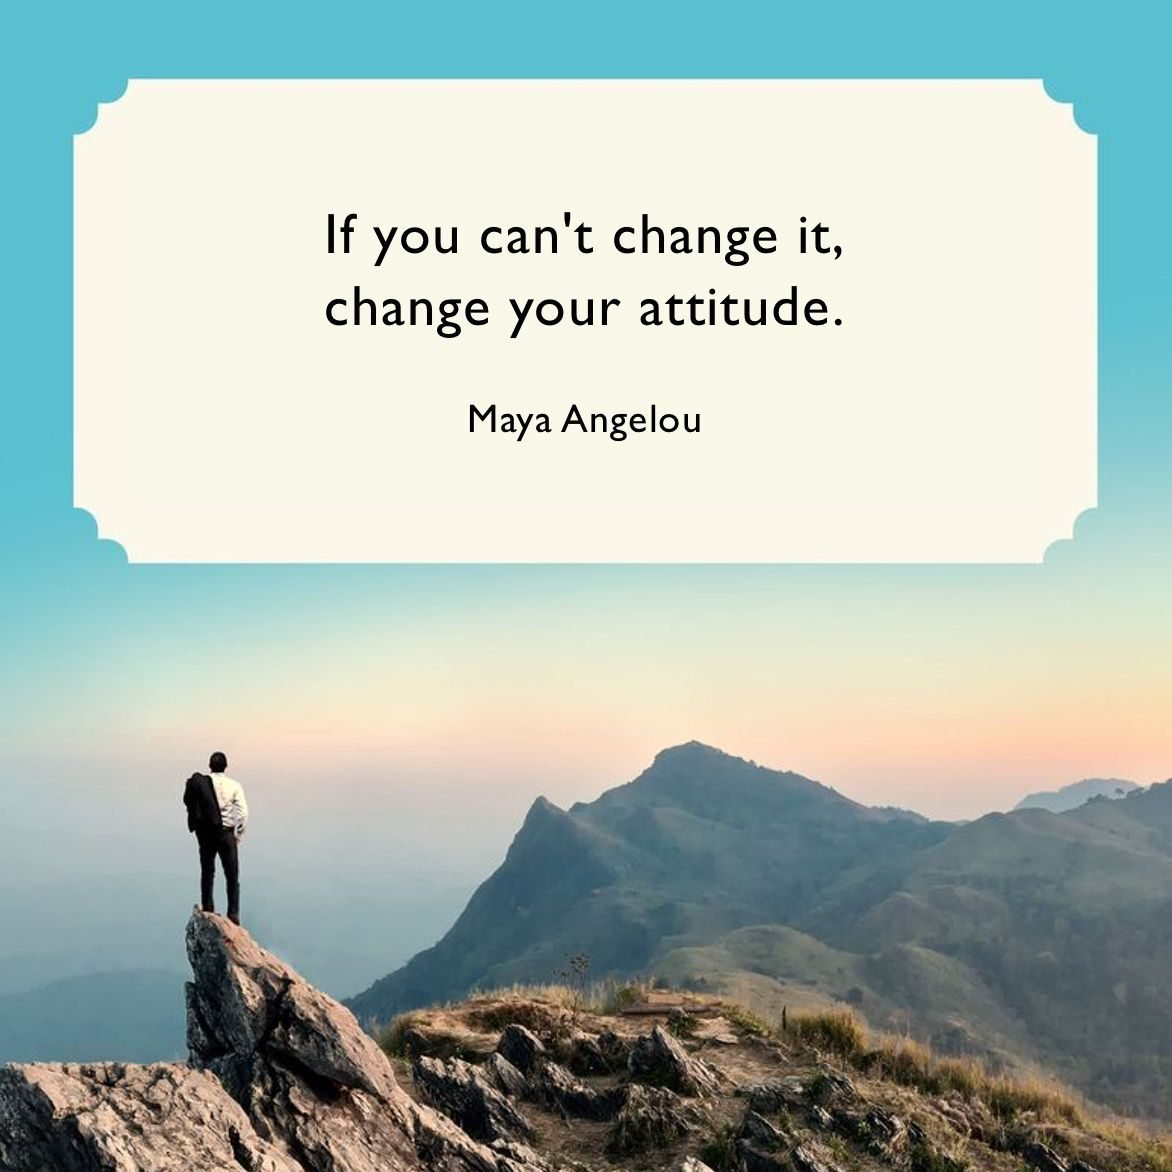 Embracing Change - quote from Maya Angelou